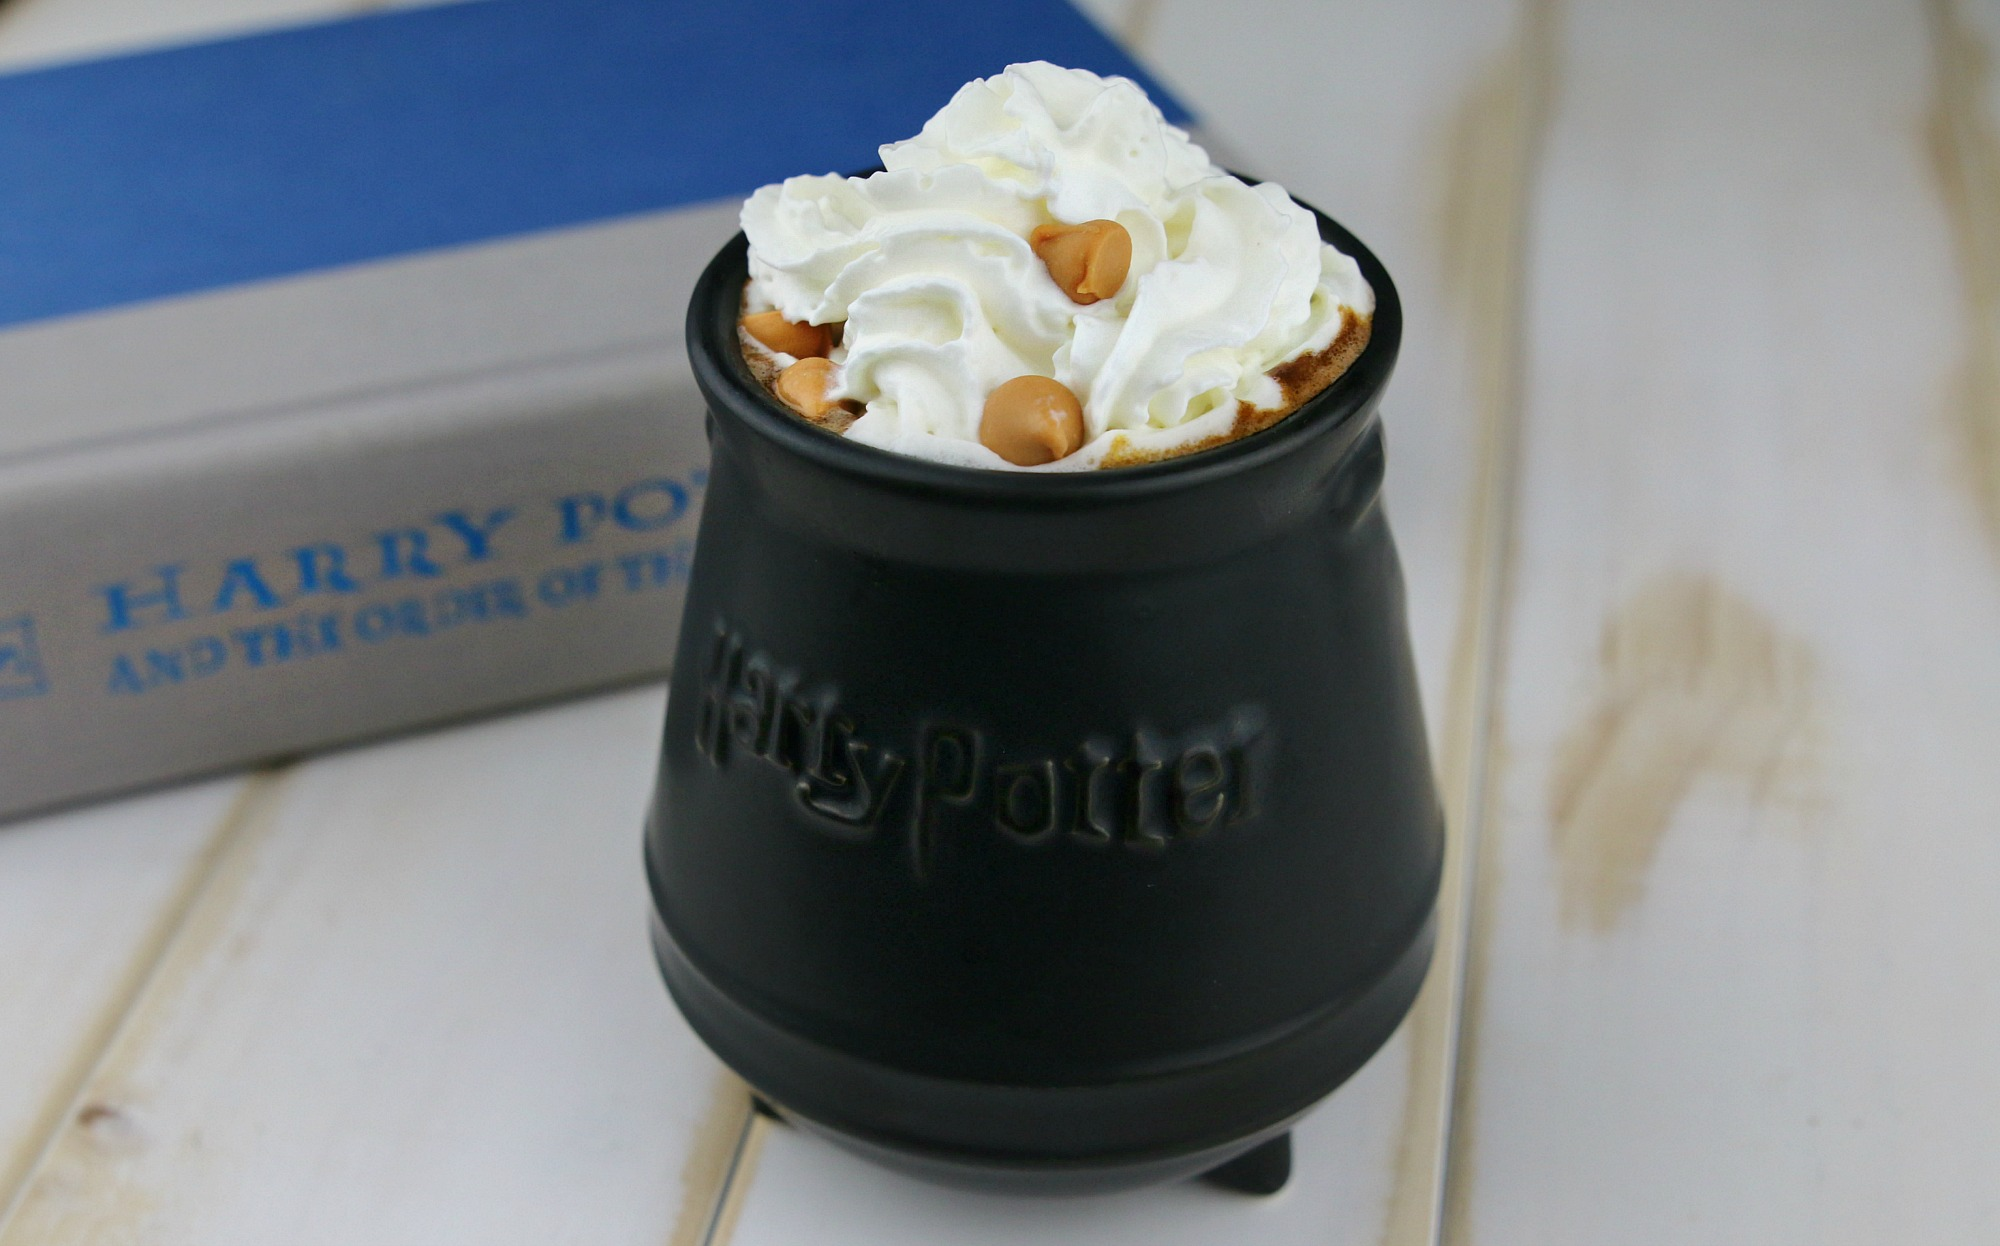 Harry Potter Butterbeer Hot Cocoa